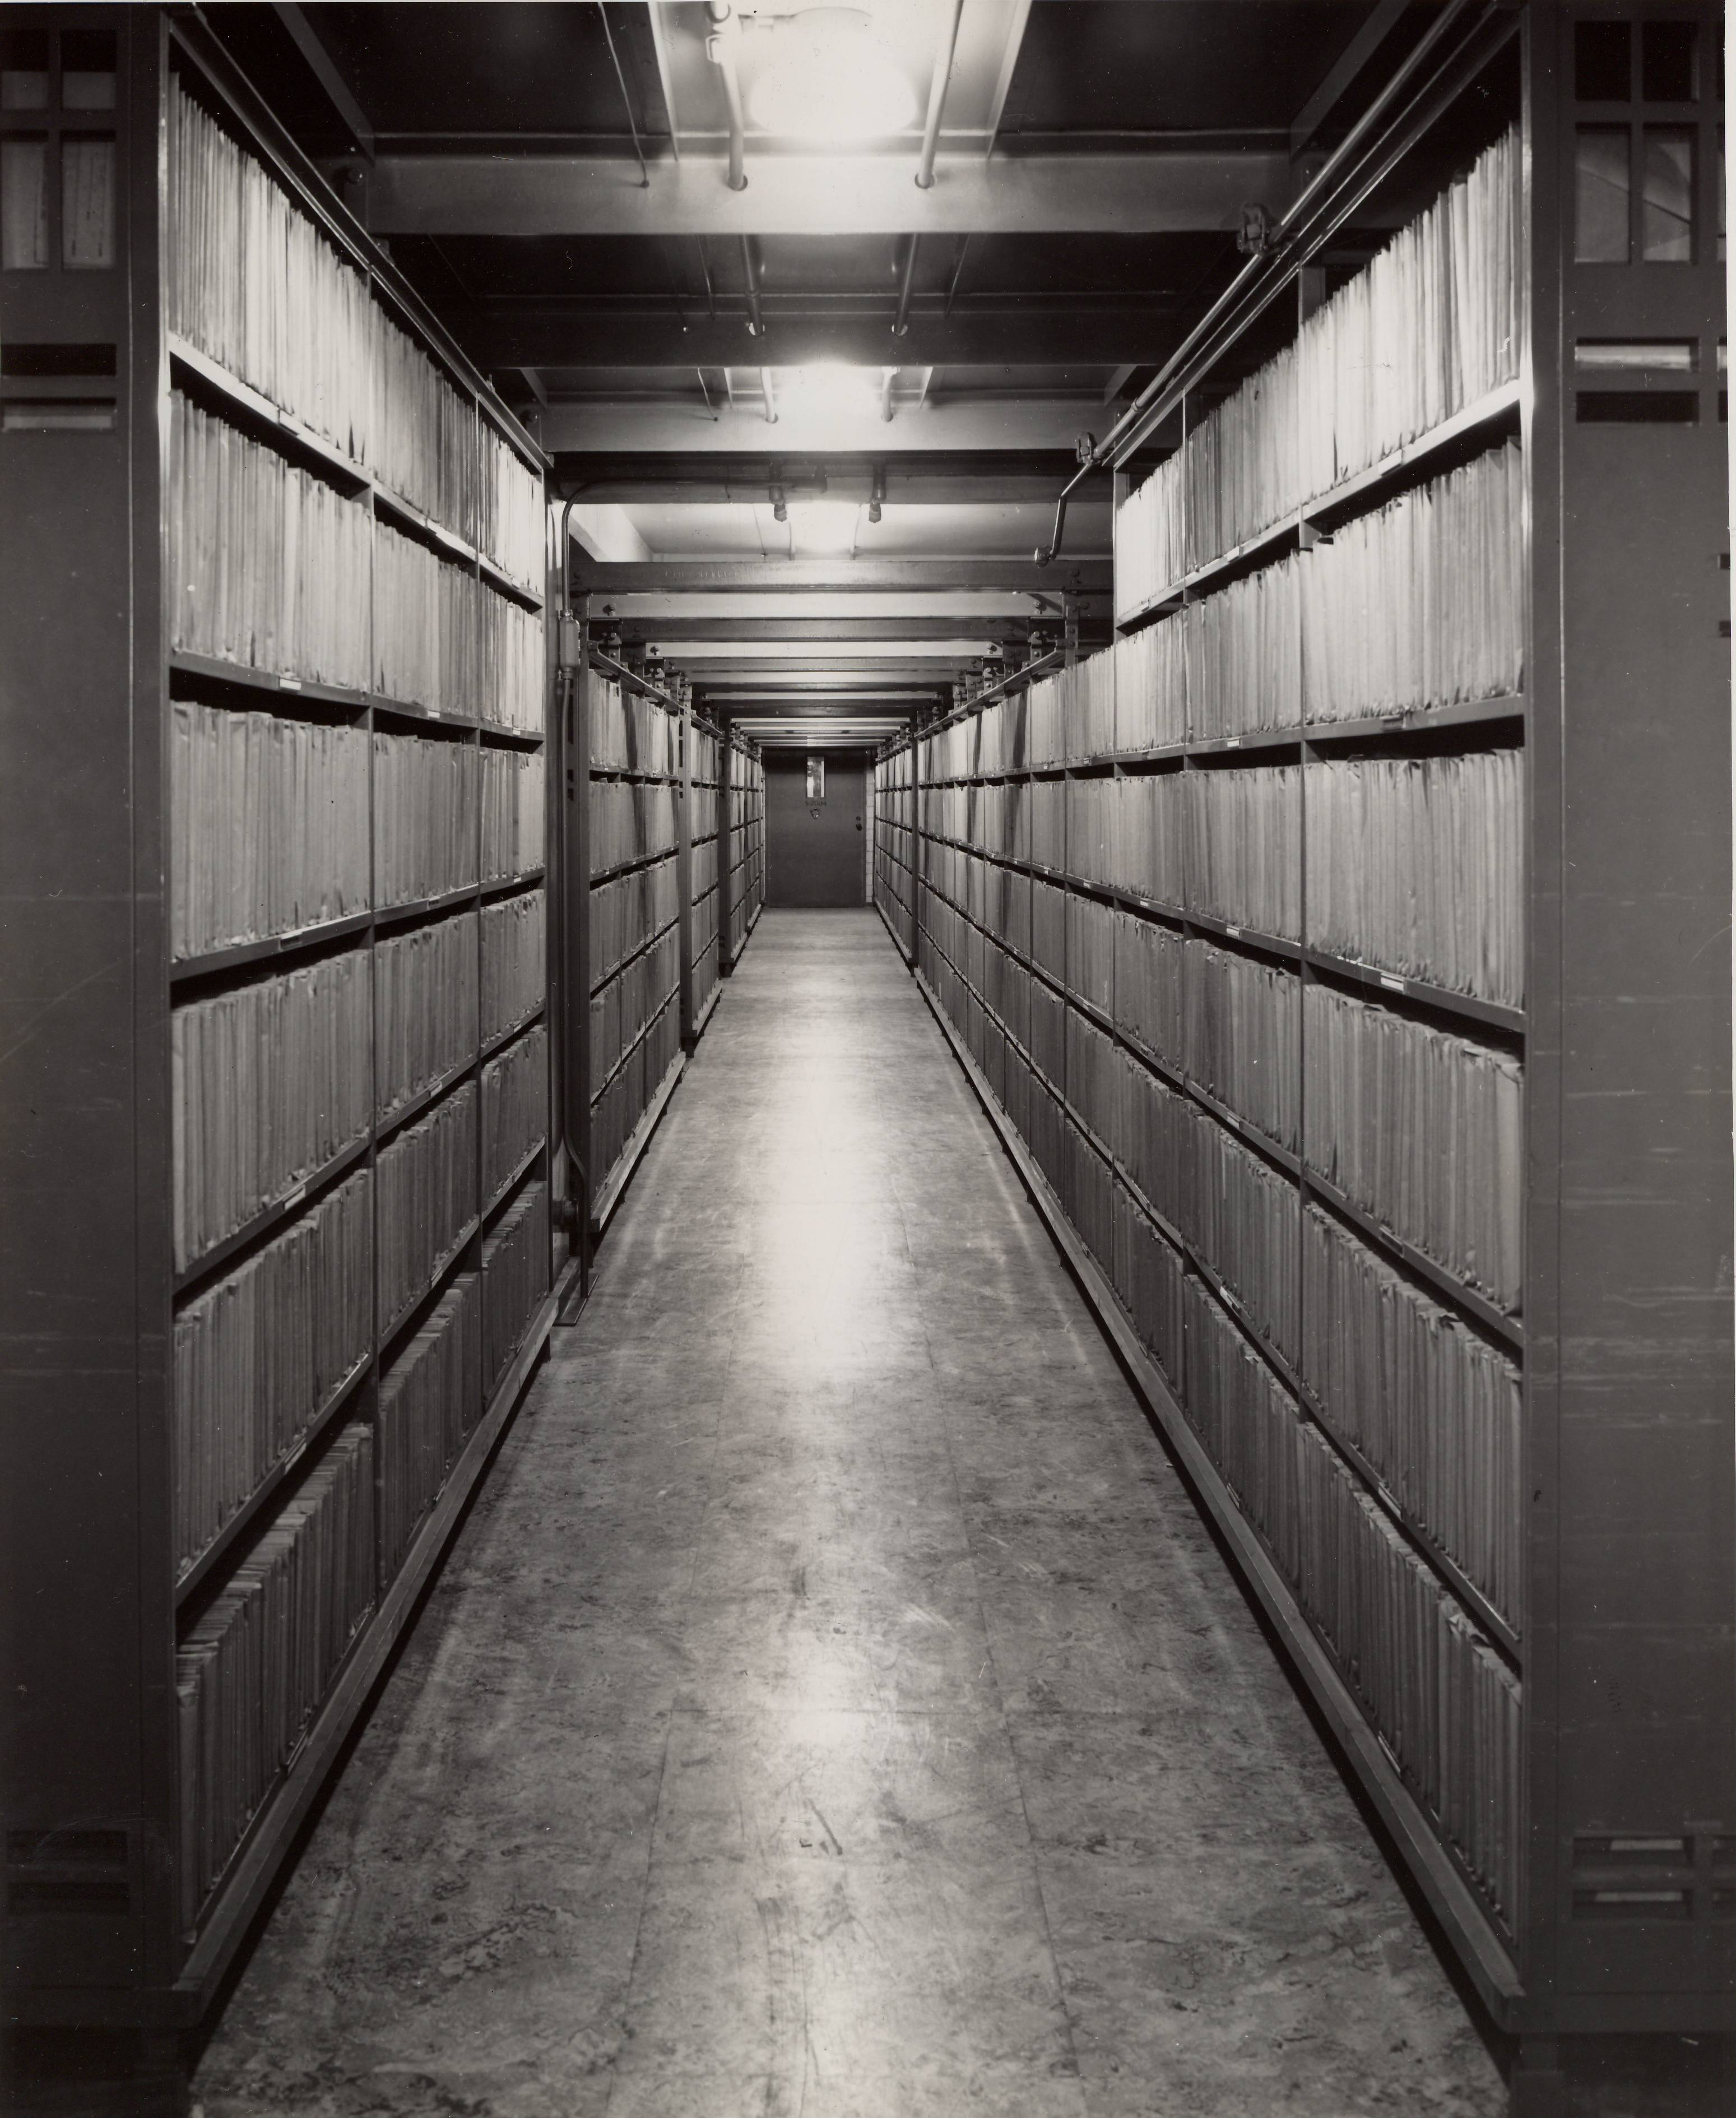 RG 64, P 112, file Records - Preservation - Flat Filing - Vertical Files in Stack S-2003, Aug. 1942.jpg